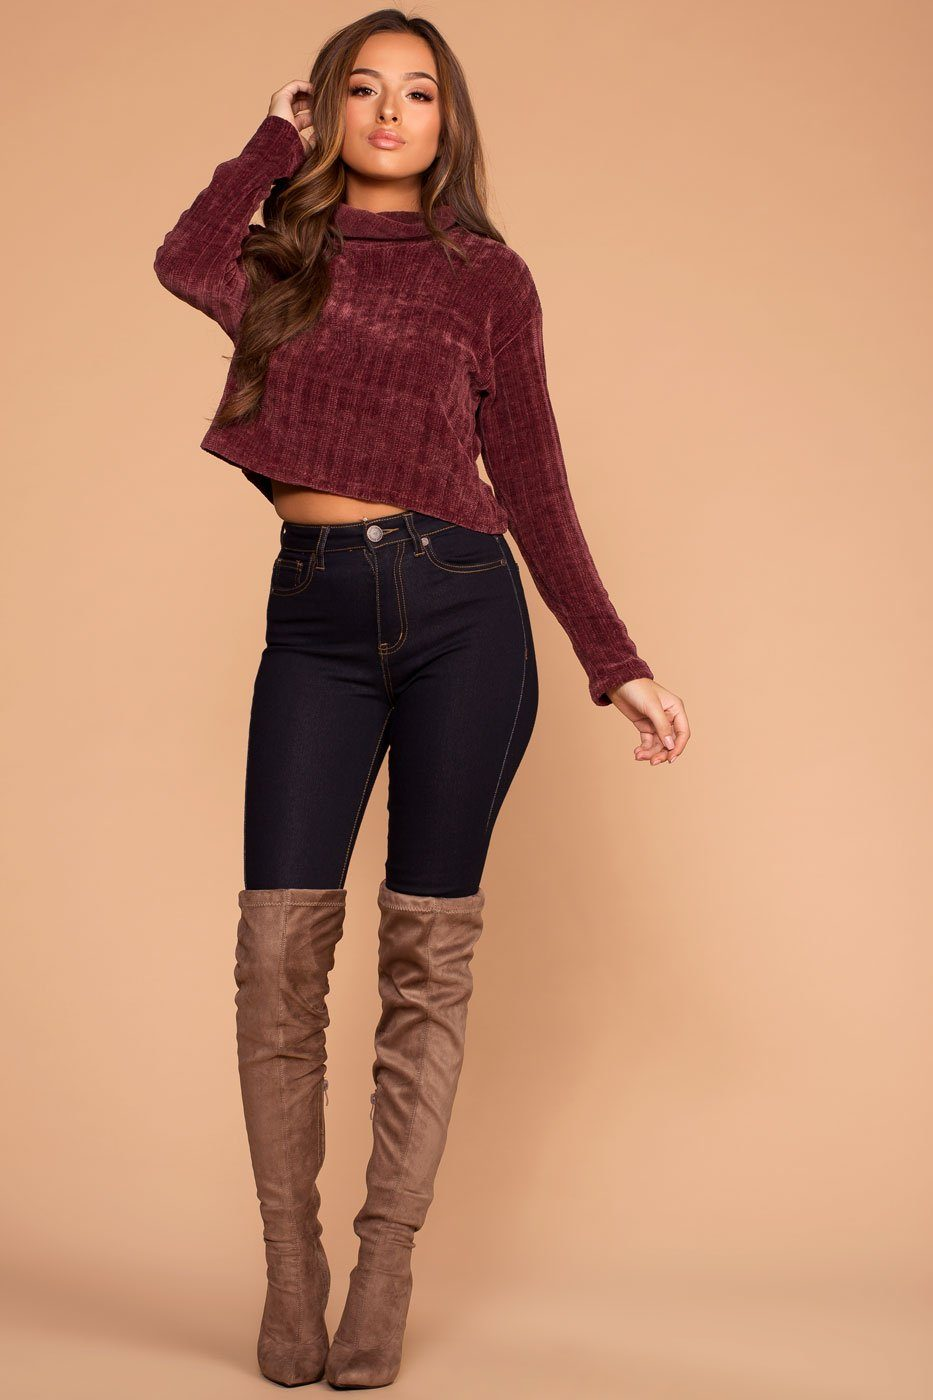 Grace Merlot Knit Crop Turtleneck Sweater Top | Shop Priceless